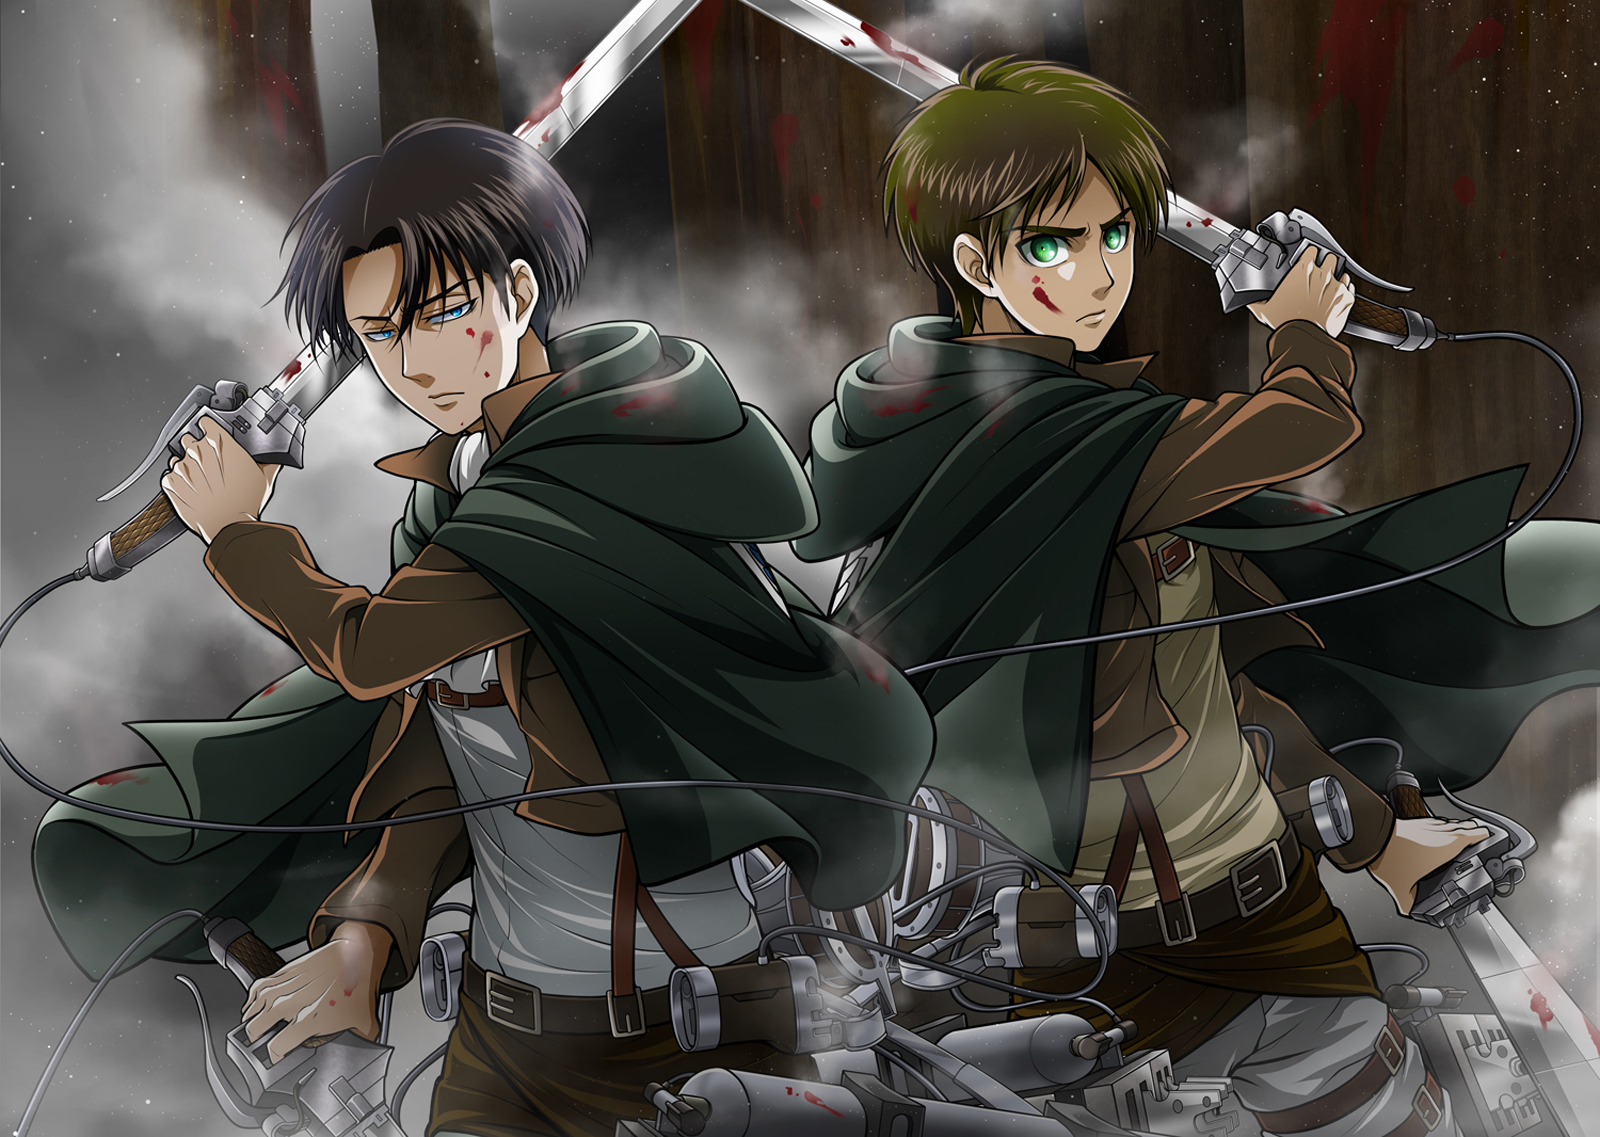 Attack On Titan Levi And Eren Levi Attack On Titan Wallpaper 72 Images Attack On Titan Shingeki No Kyojin Doujinshi Unap Eren Levi On Storenvy Attack On Titan S1e14 Of The